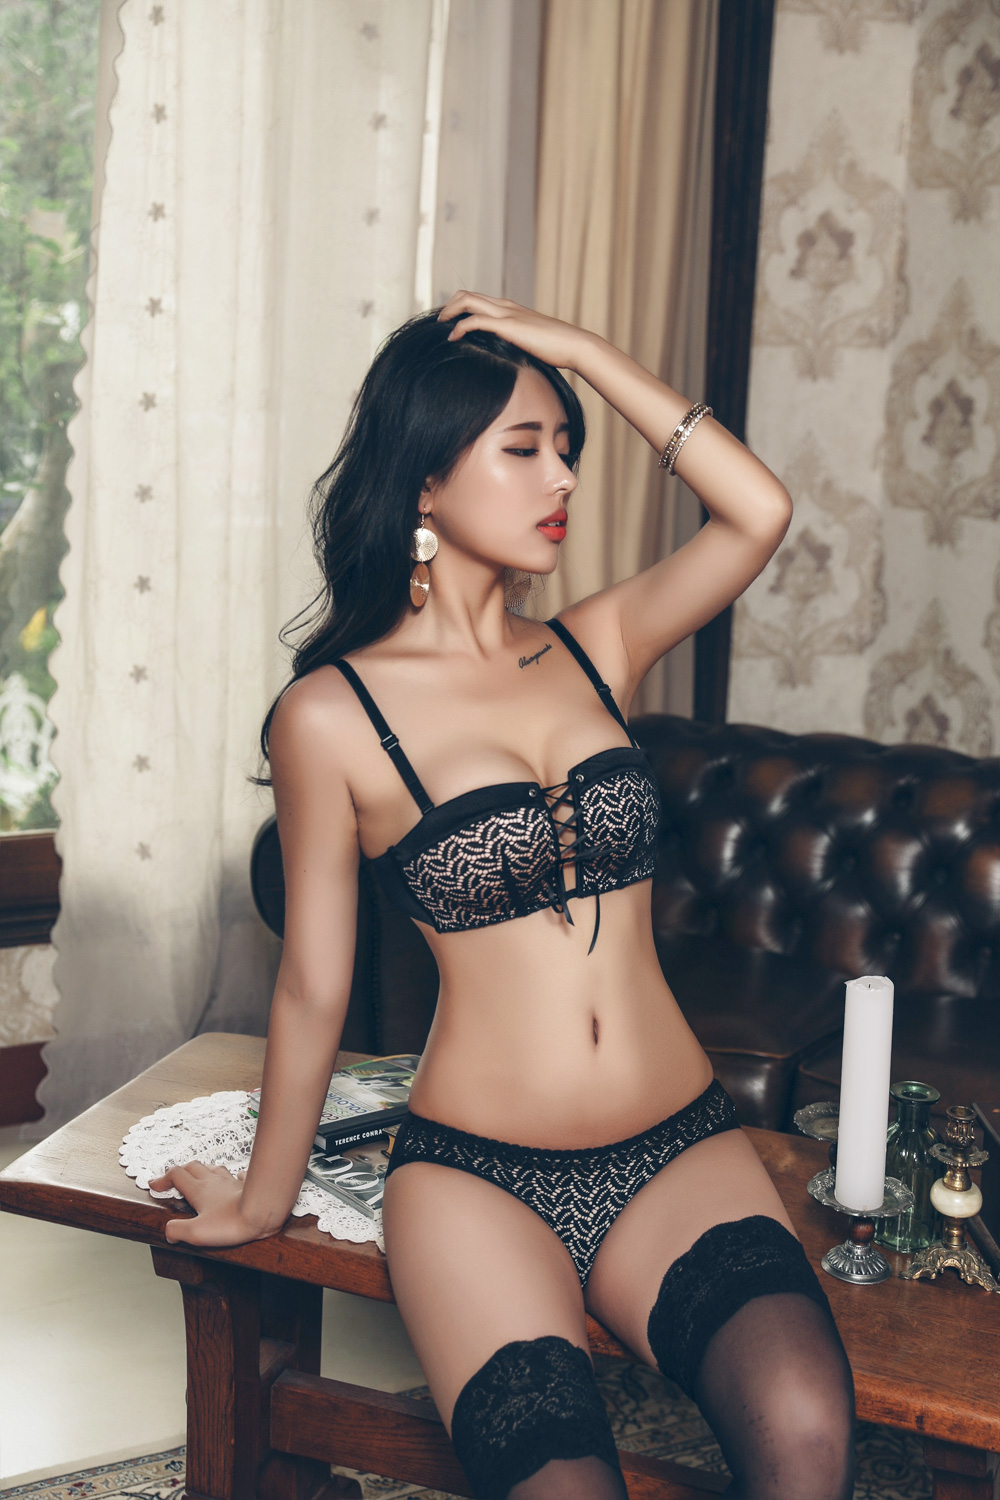 gorgeous Korean lingerie model - I like